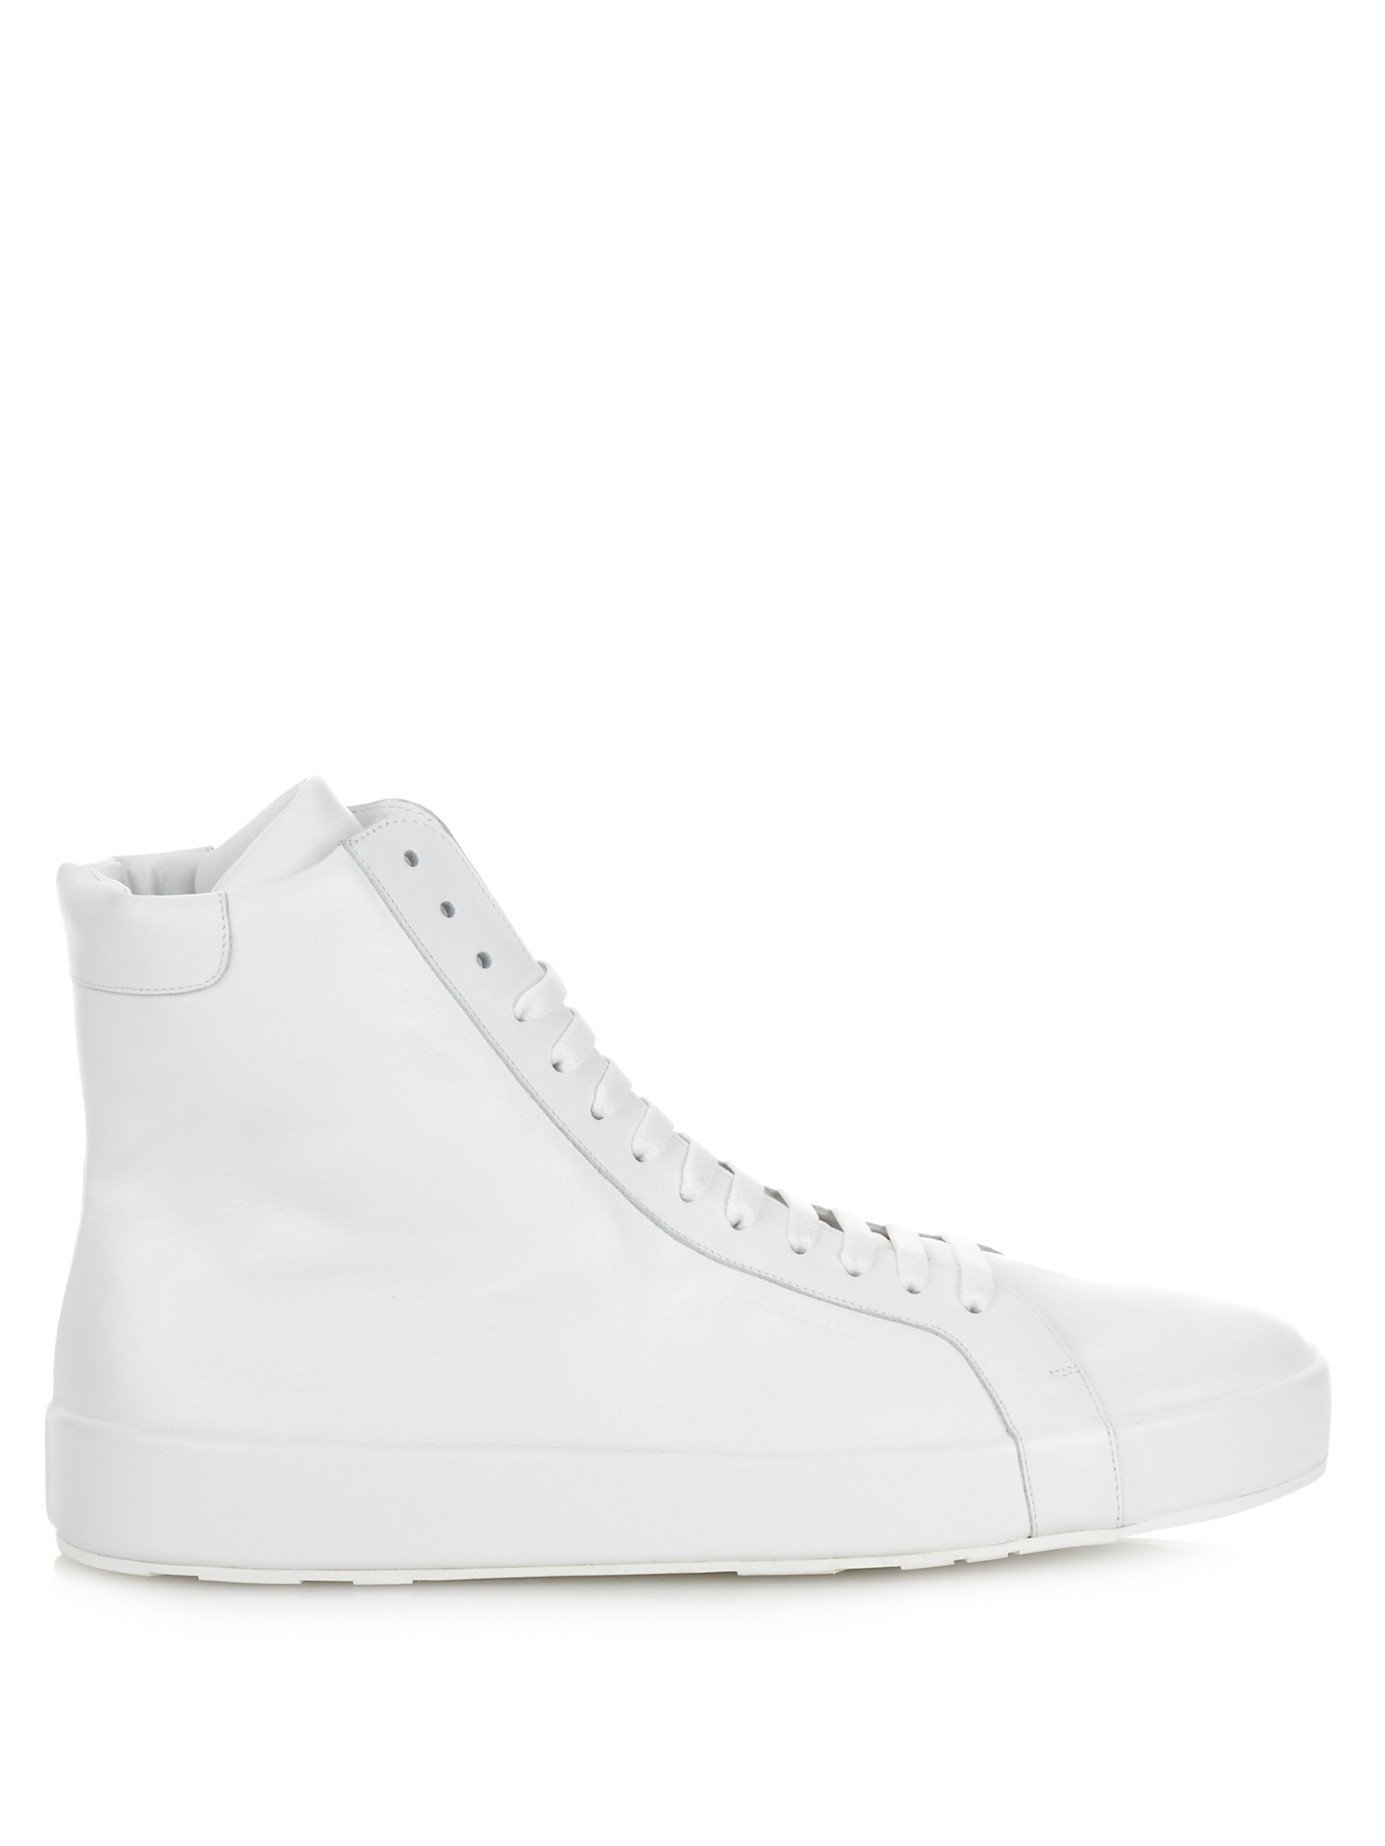 Jil Sander Leather High Trainers